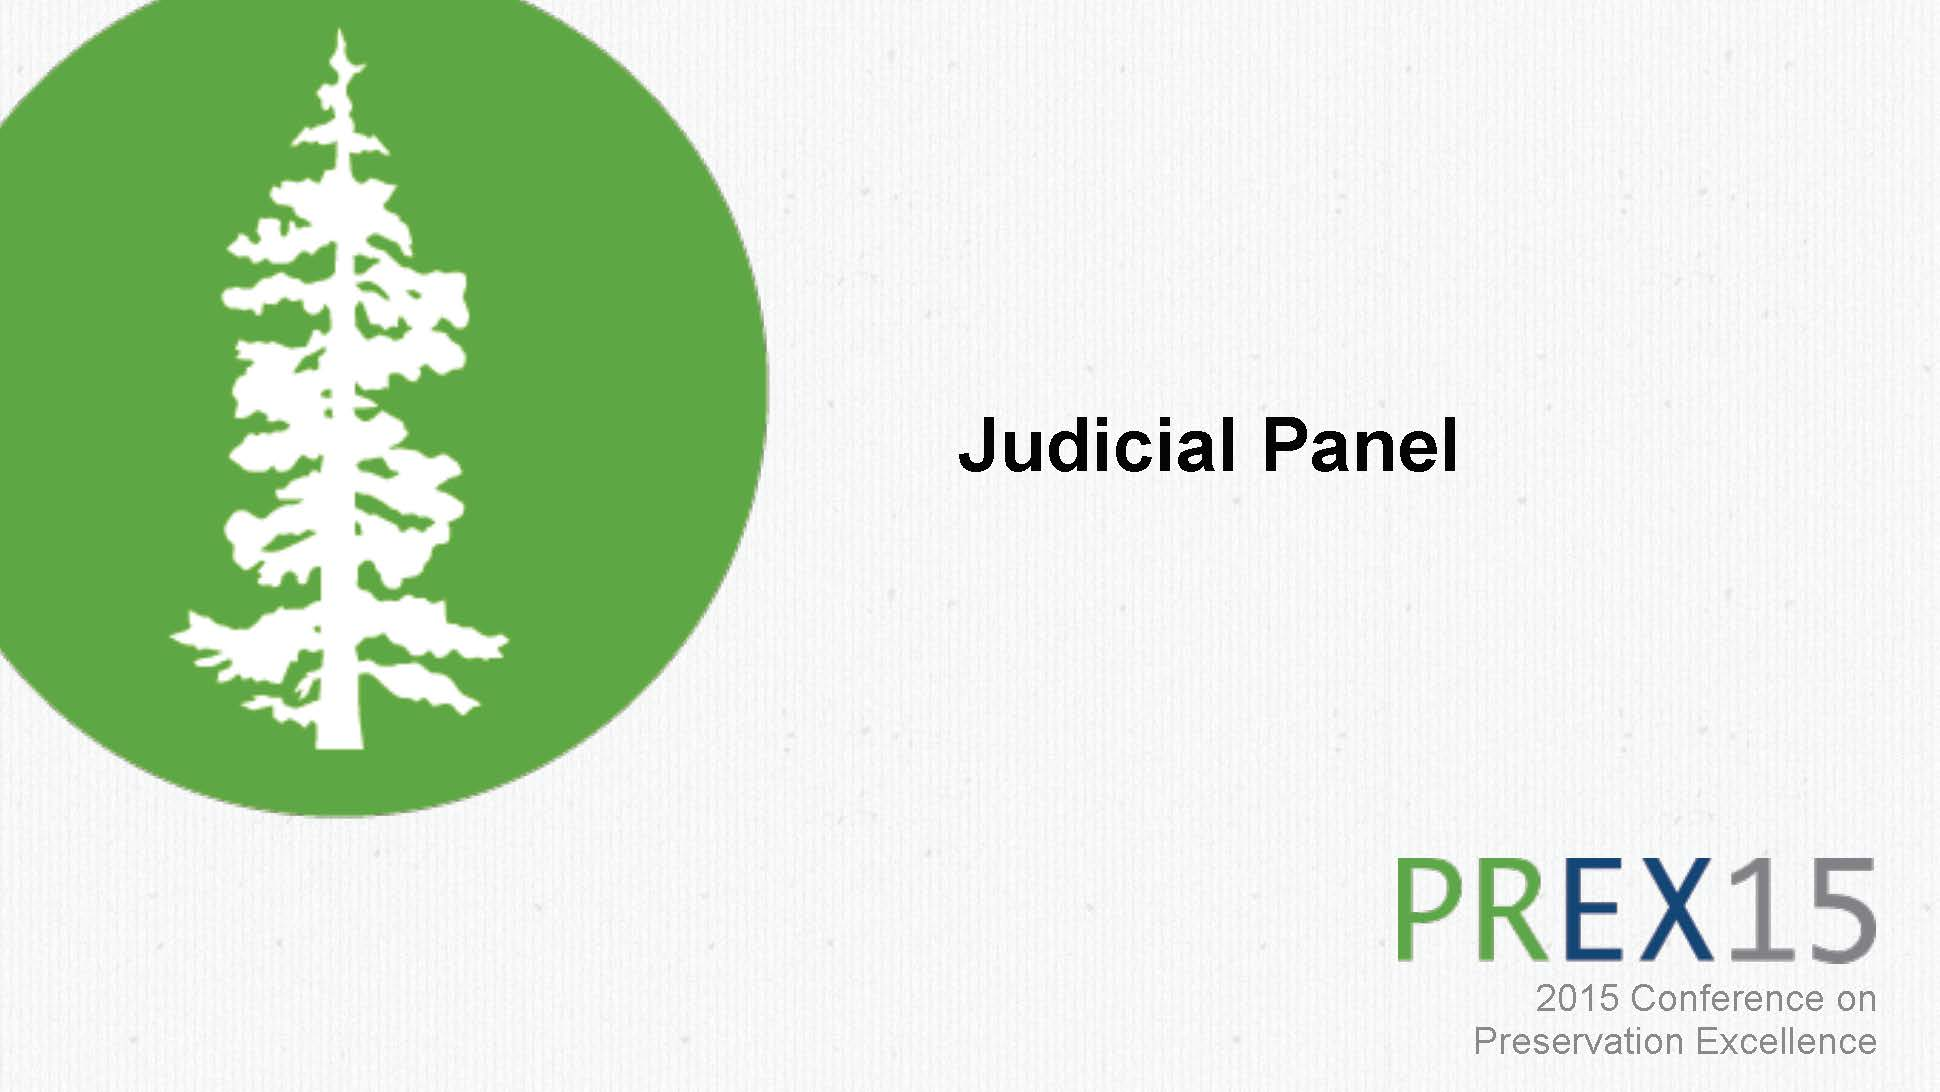 Session 10: Judicial Panel